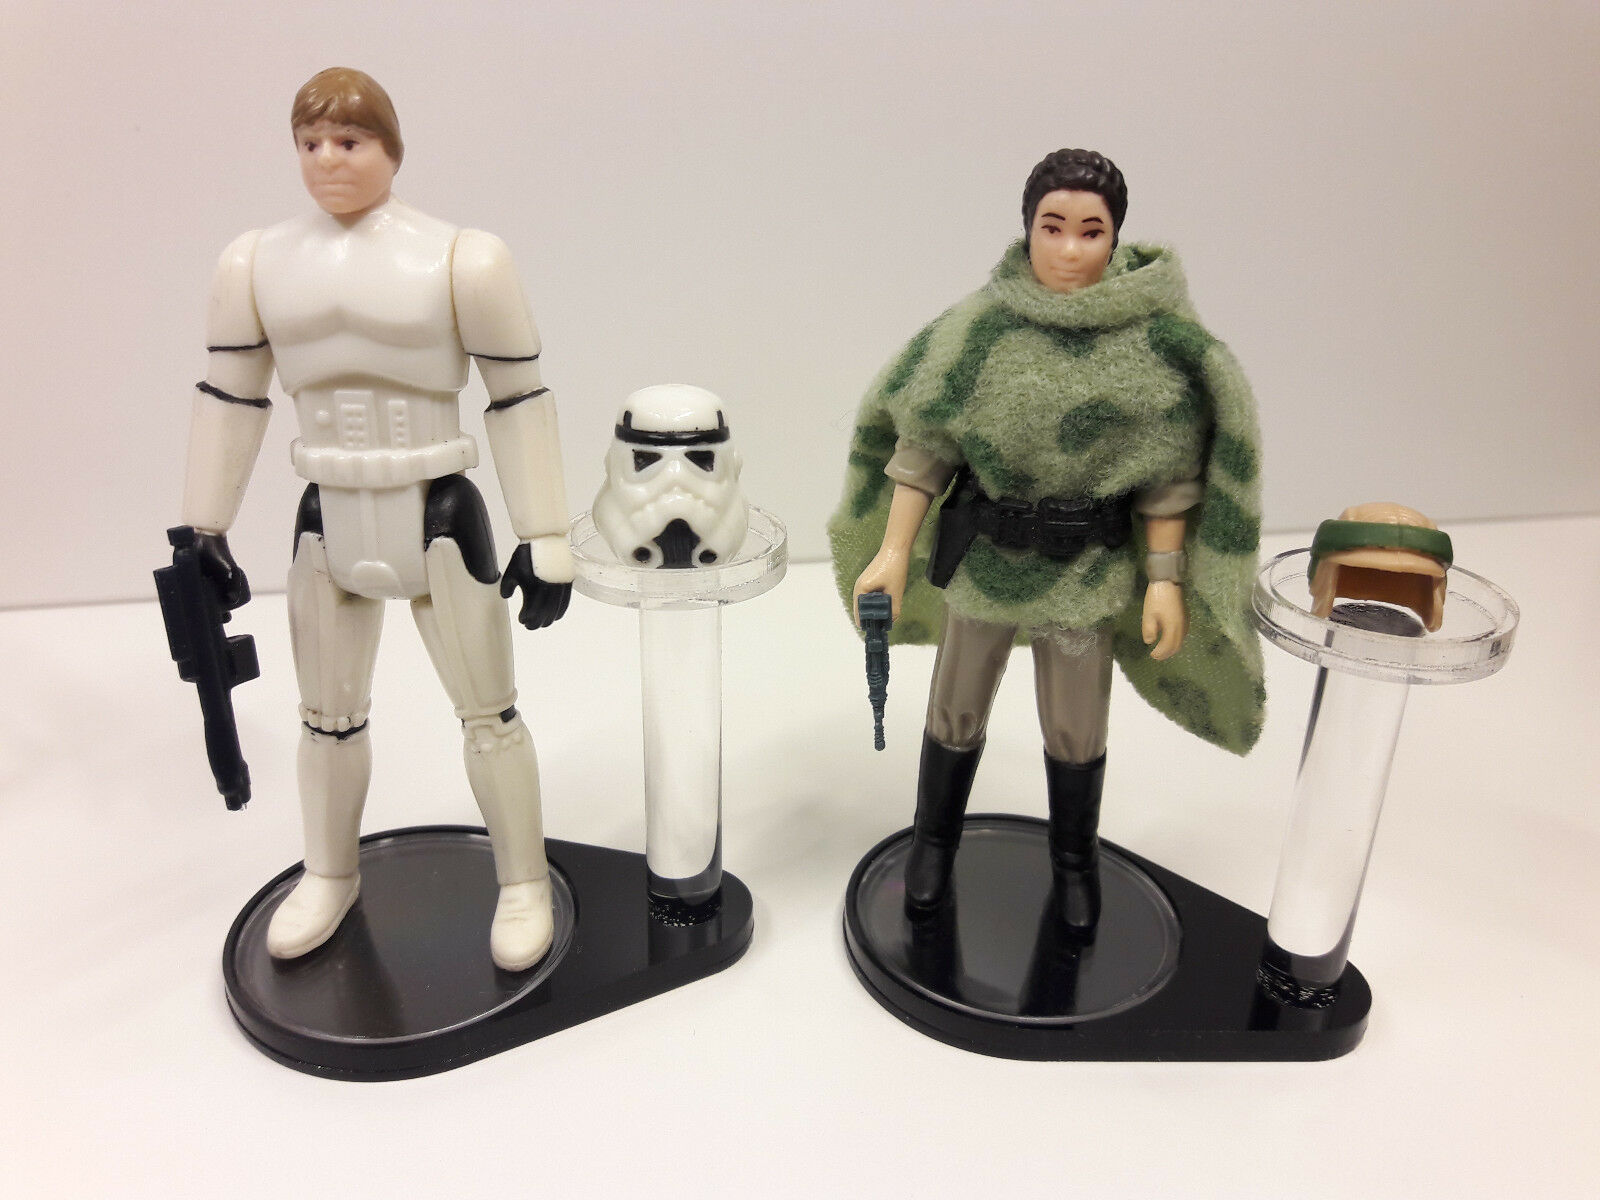 4 x Vintage Star Star Star Wars Figure + Helmet Stands - Kenner (DISPLAY STAND ONLY) a1e671